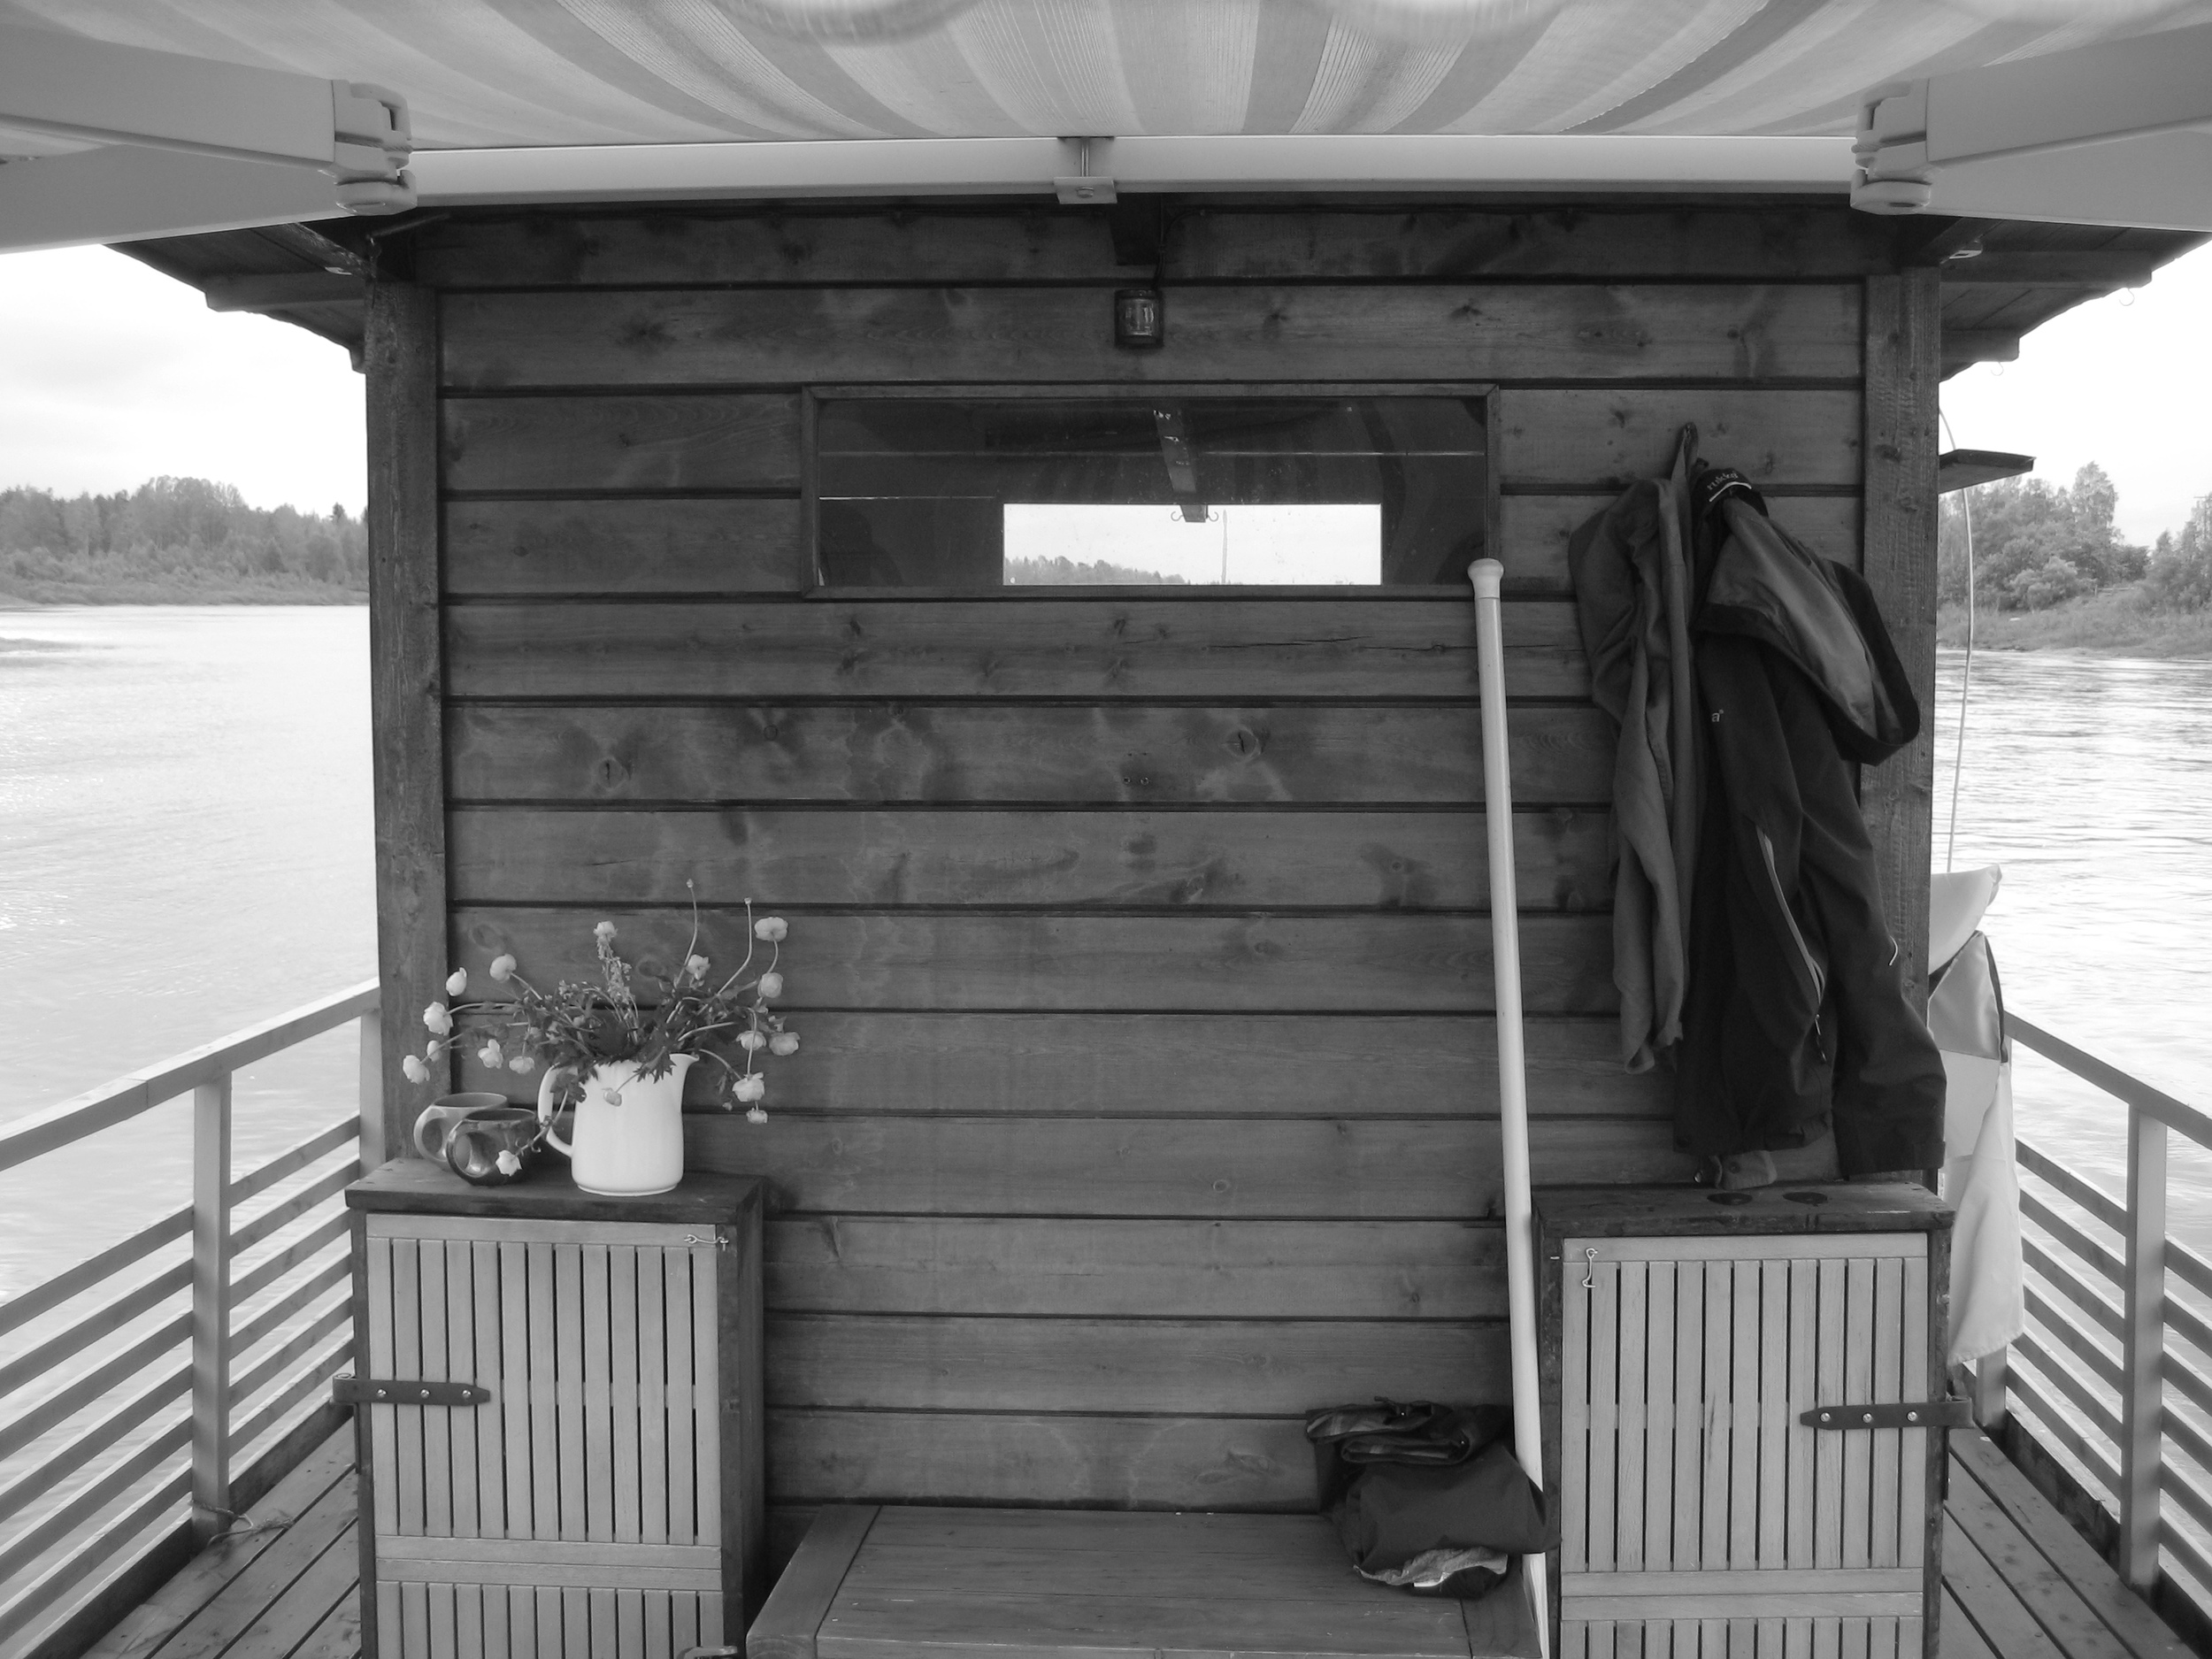 Sauna on Ounasjoki-river